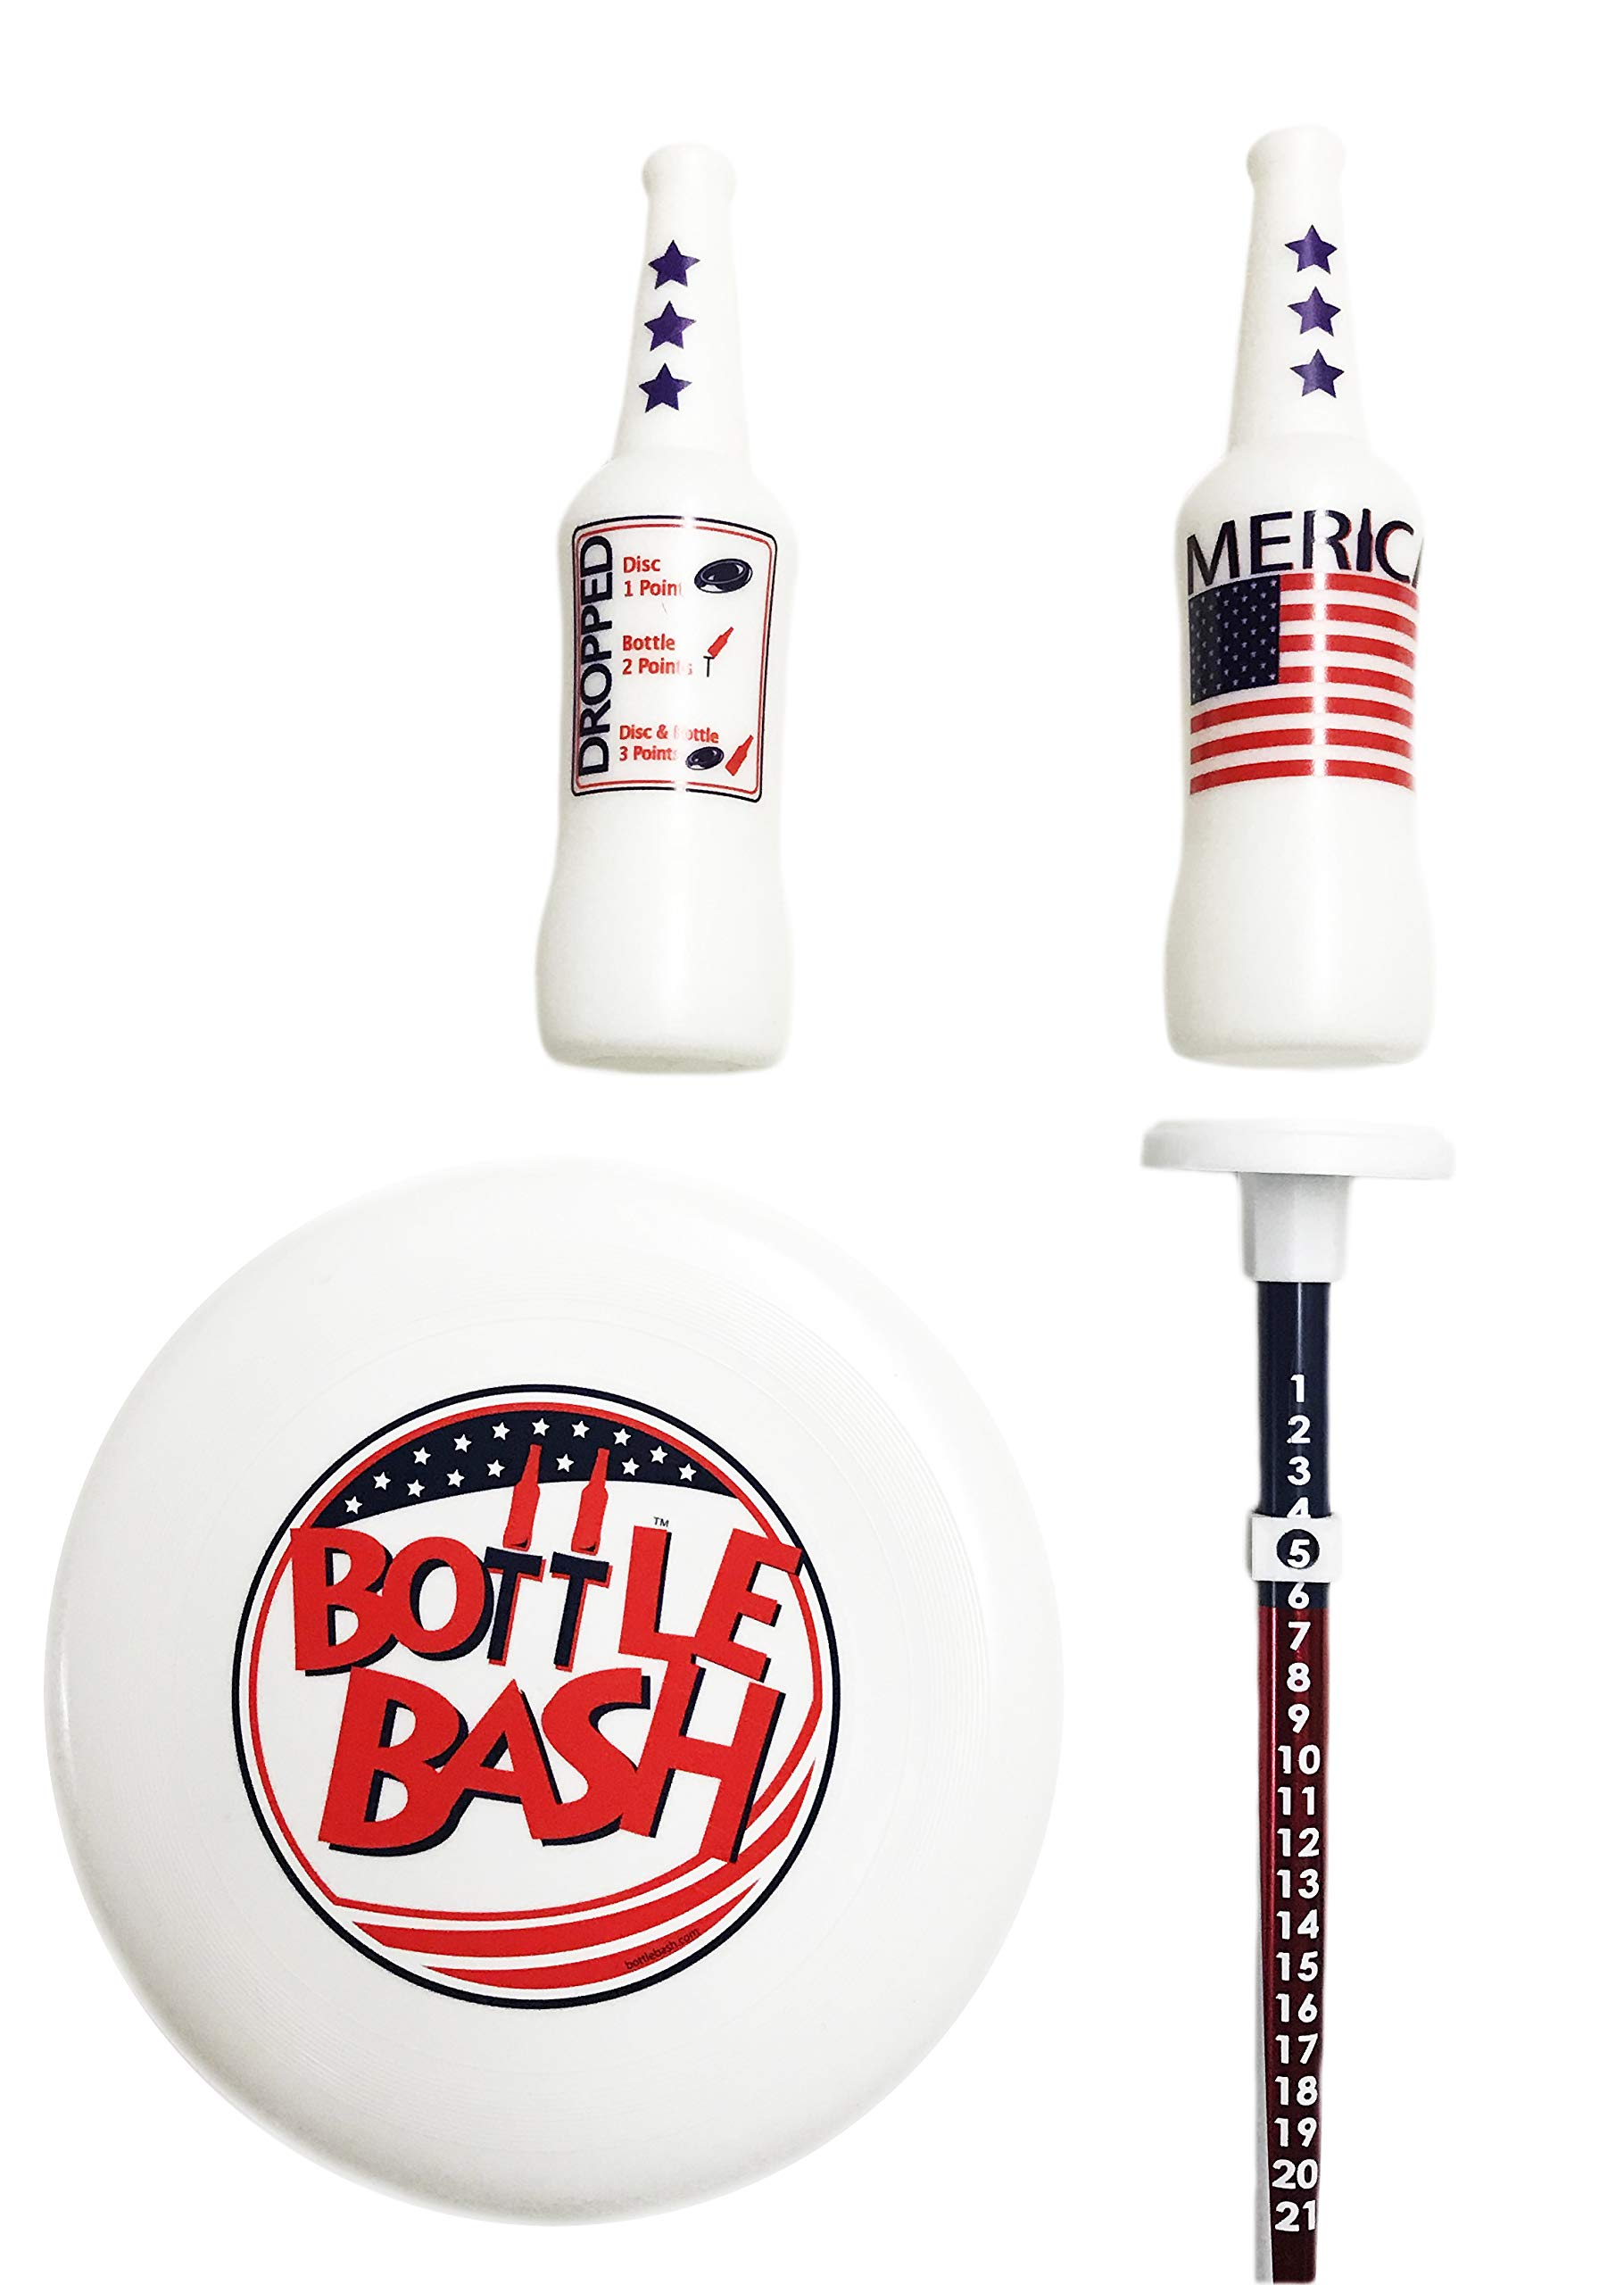 Bottle Bash USA Game Set with Soft Surface Spike (Polish Horseshoes, Beersbee) by Poleish Sports (Image #2)